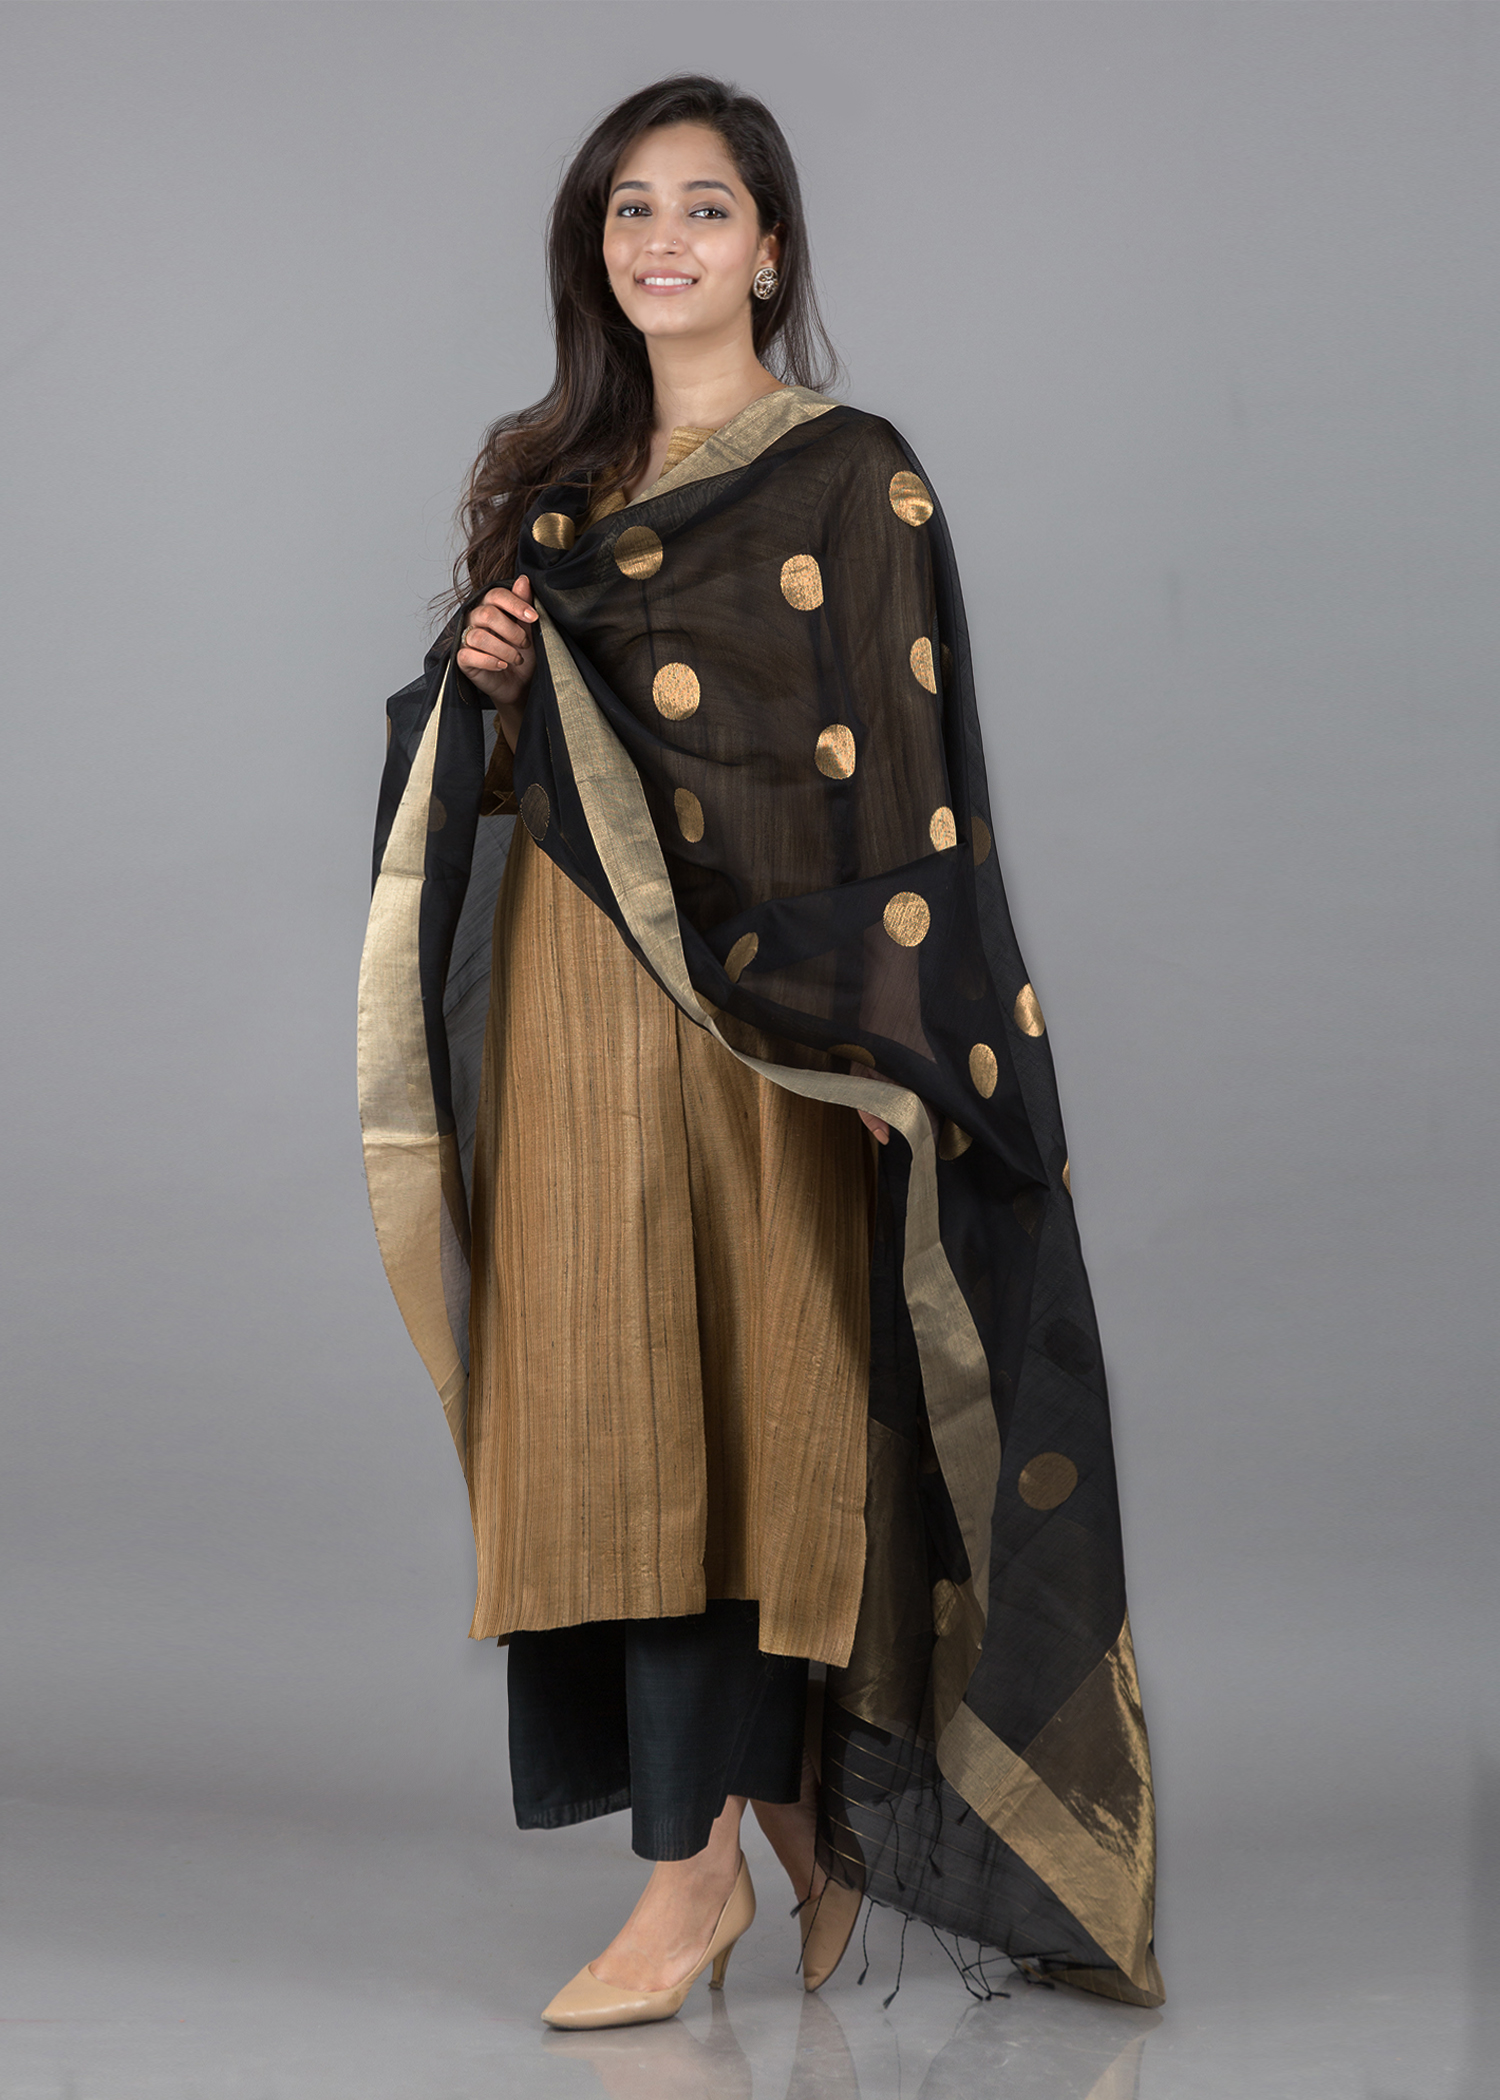 catalog/October-November 2017/kosa kurta 4.jpg